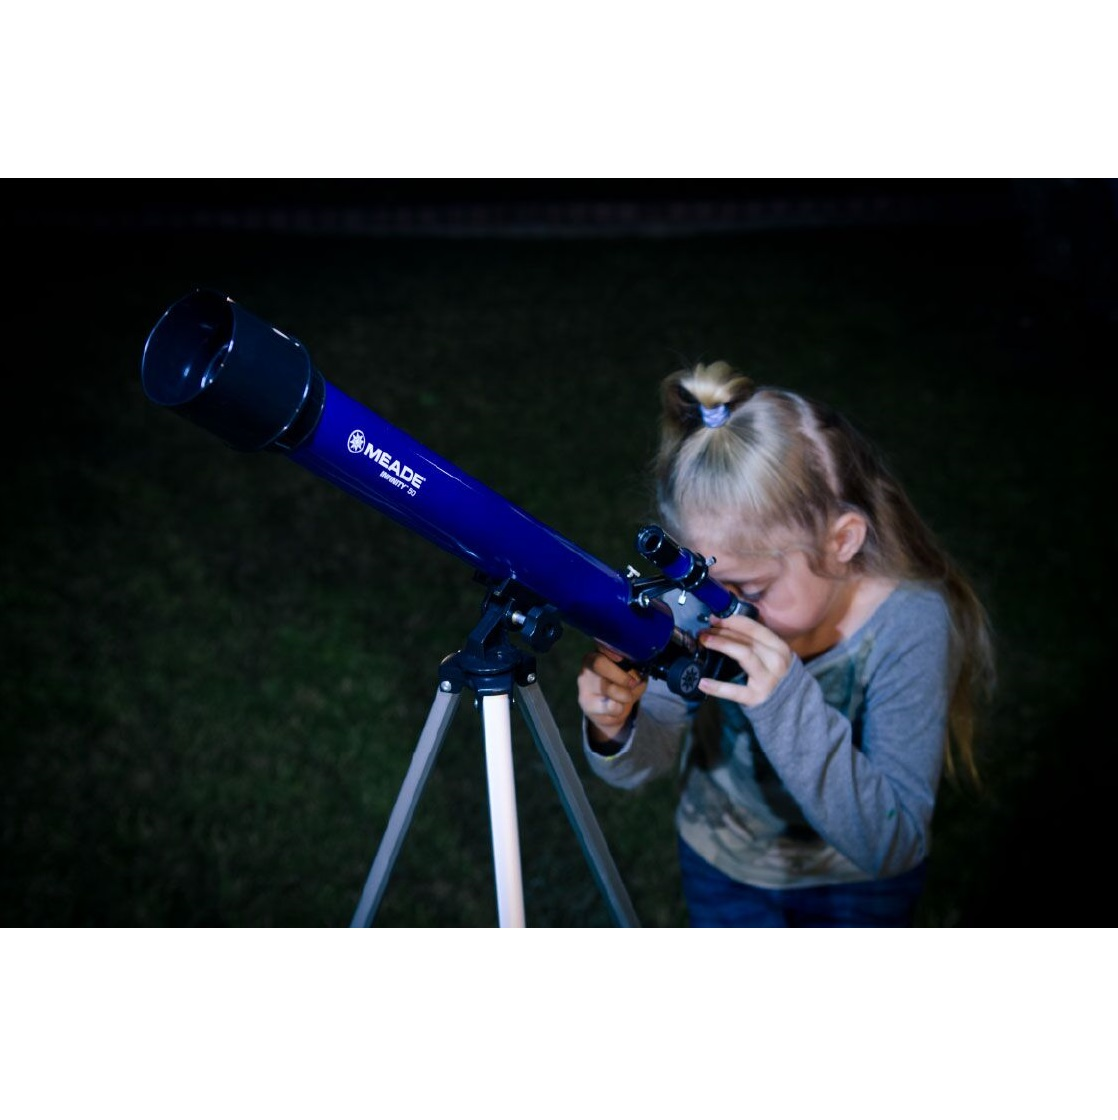 50mm Altazimuth Refractor